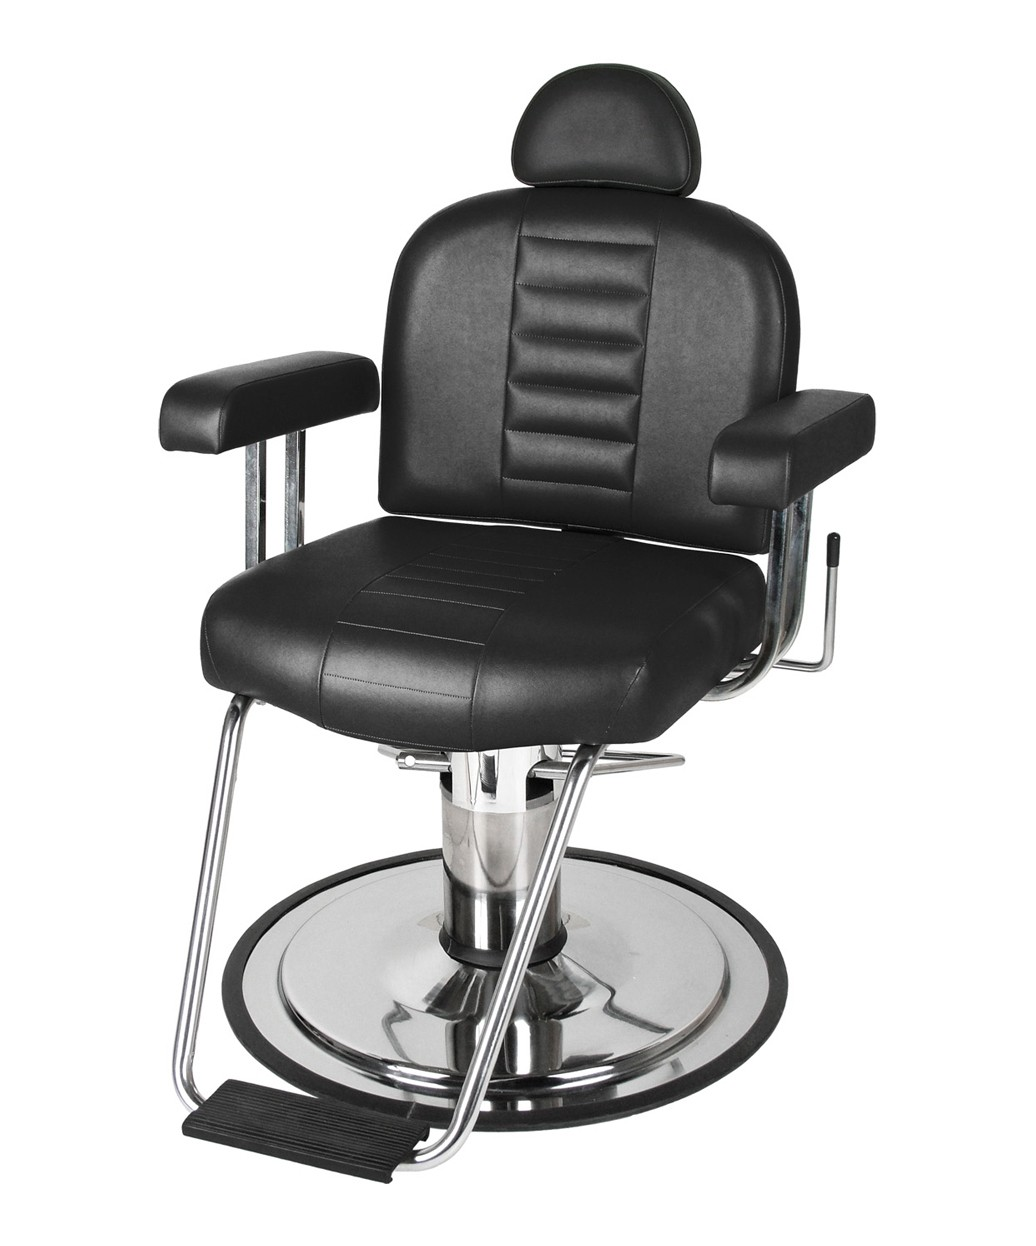 Collins 8060 Charger Mid Size Barber Chair